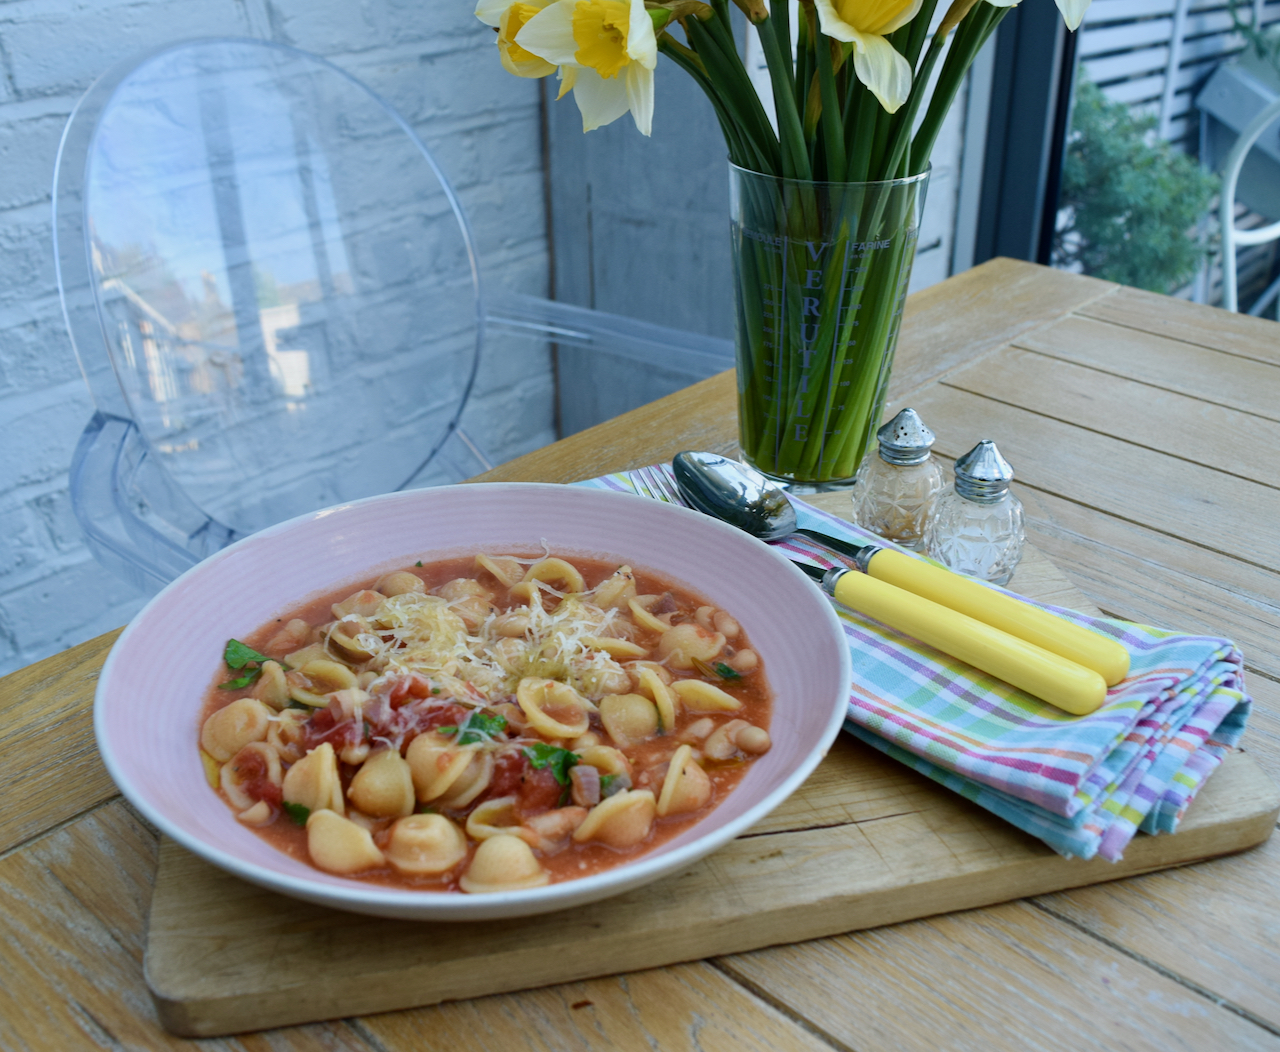 Brothy Tomato Pasta with Beans recipe from Lucy Loves Food Blog